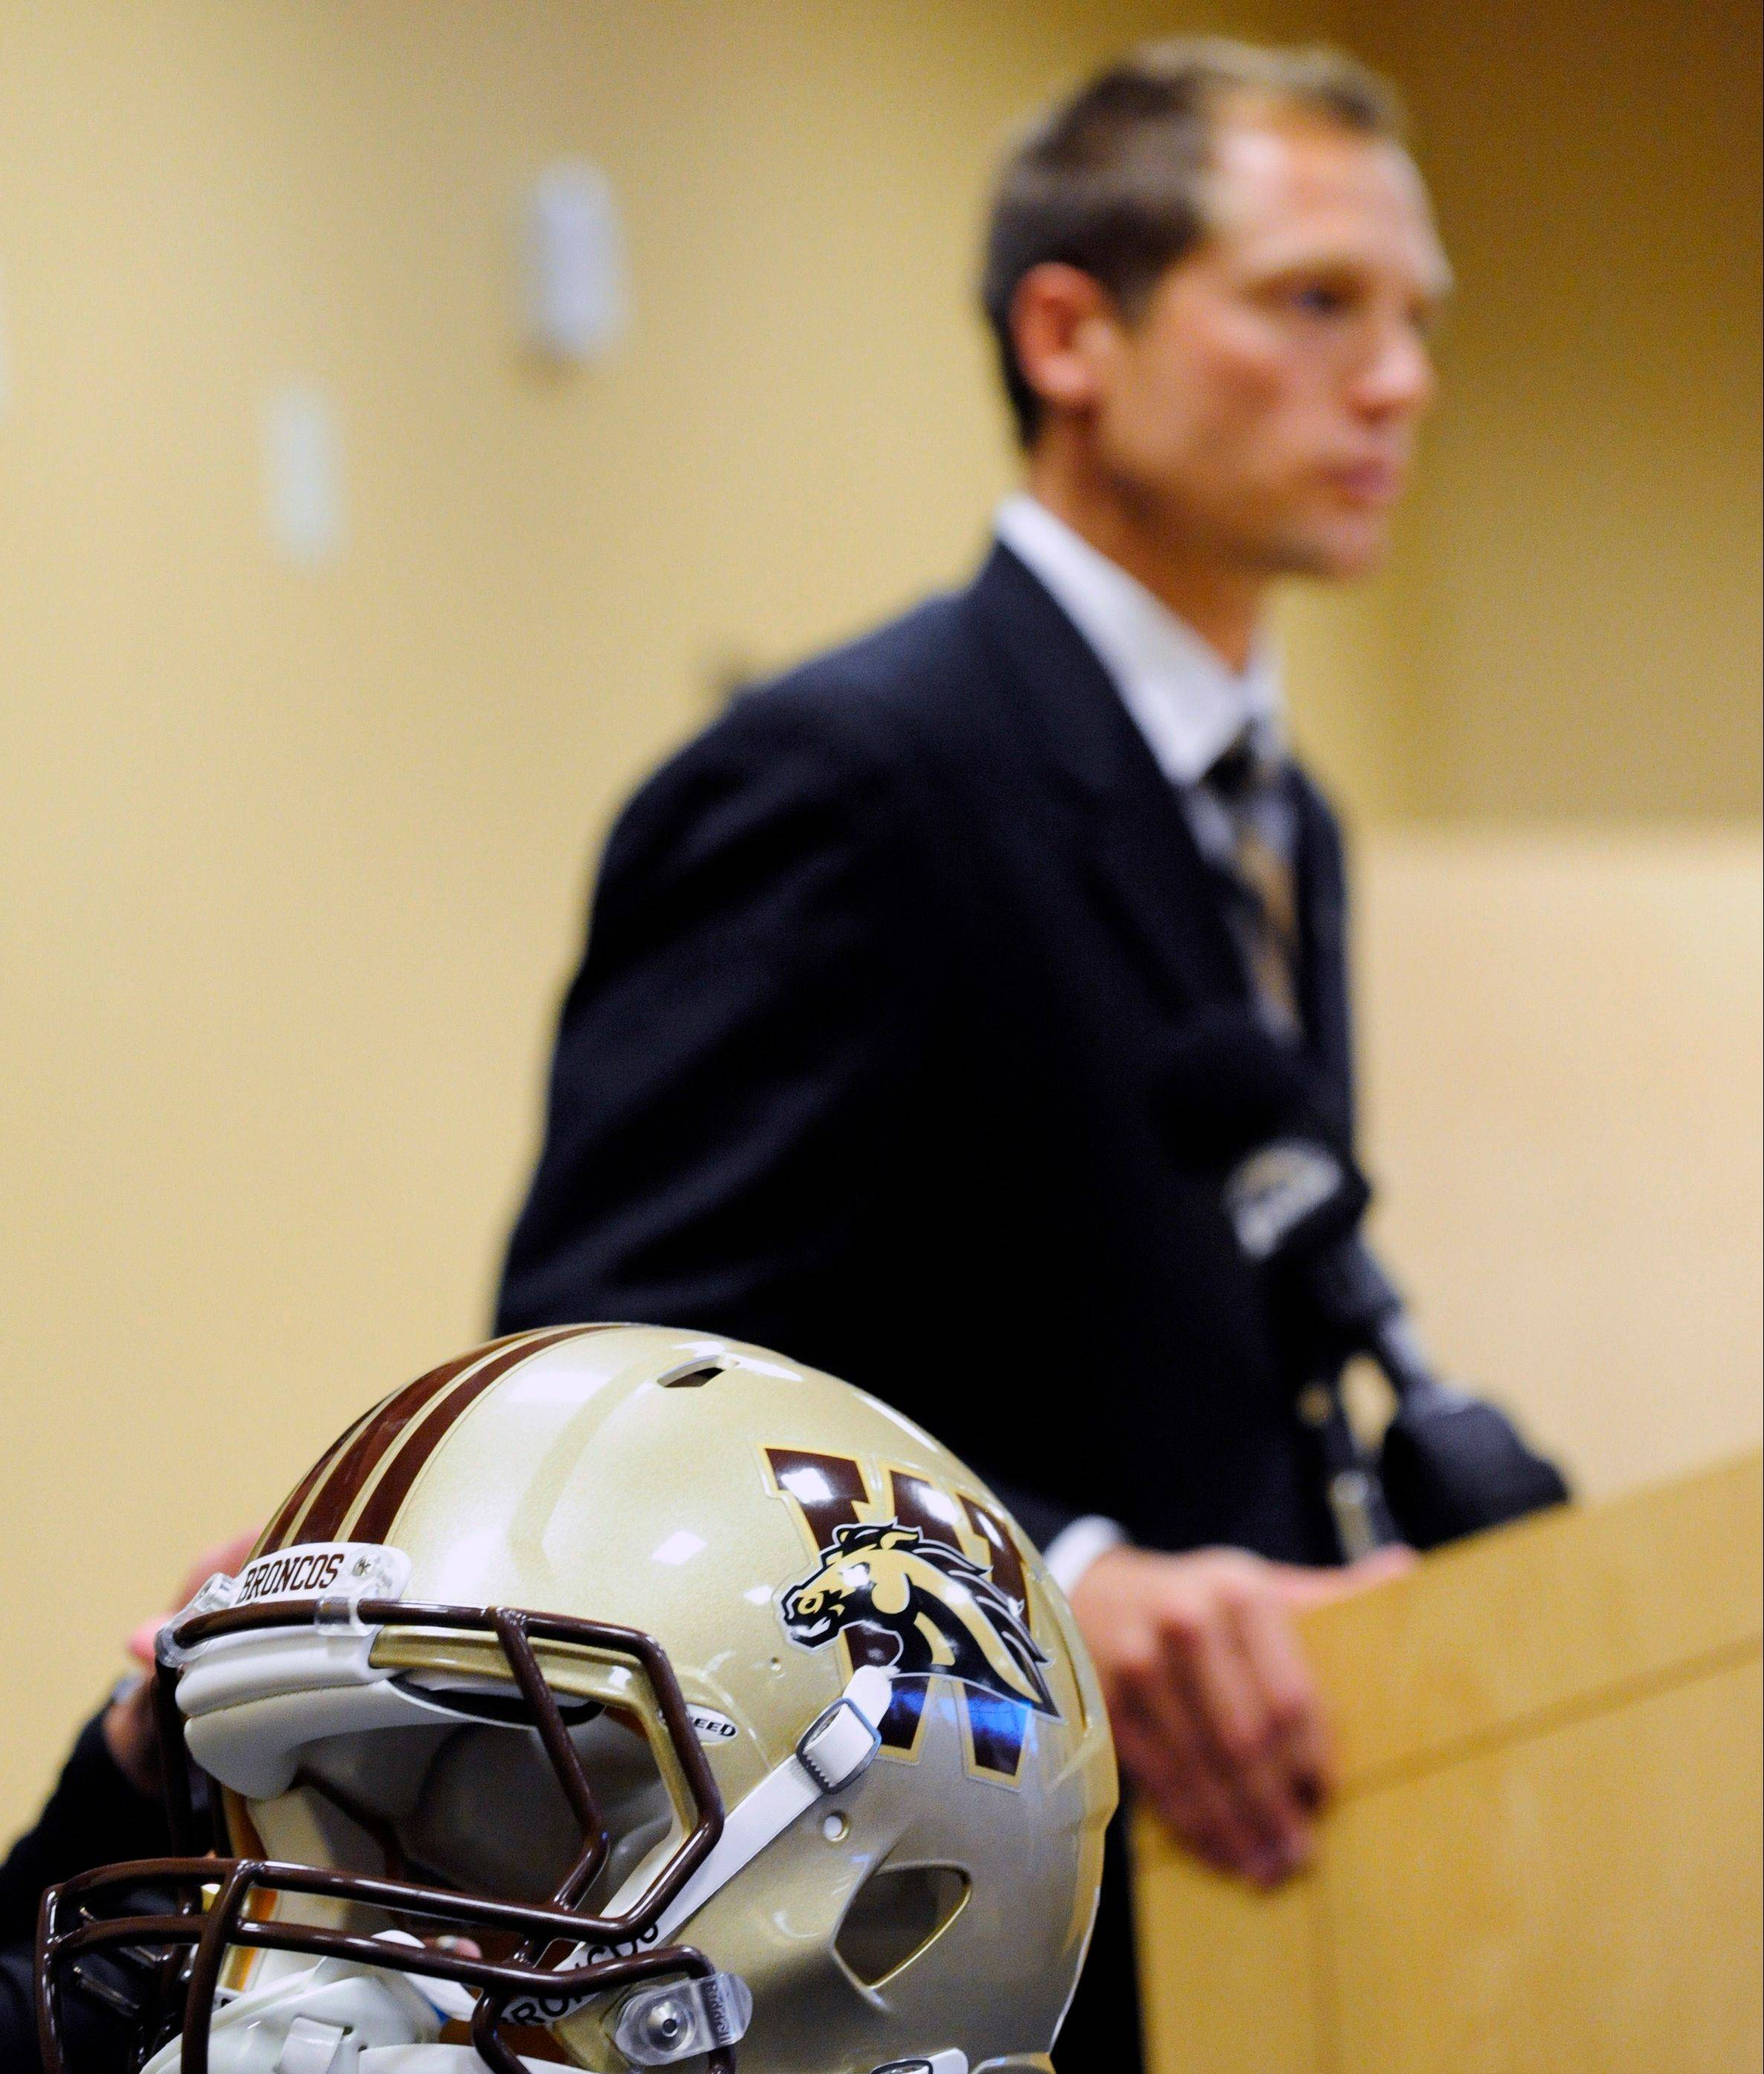 Here's P.J. Fleck, above speaking after being named as Western Michigan's new football coach on Tuesday, and below during his senior year 13 years ago playing football at Kaneland High School.